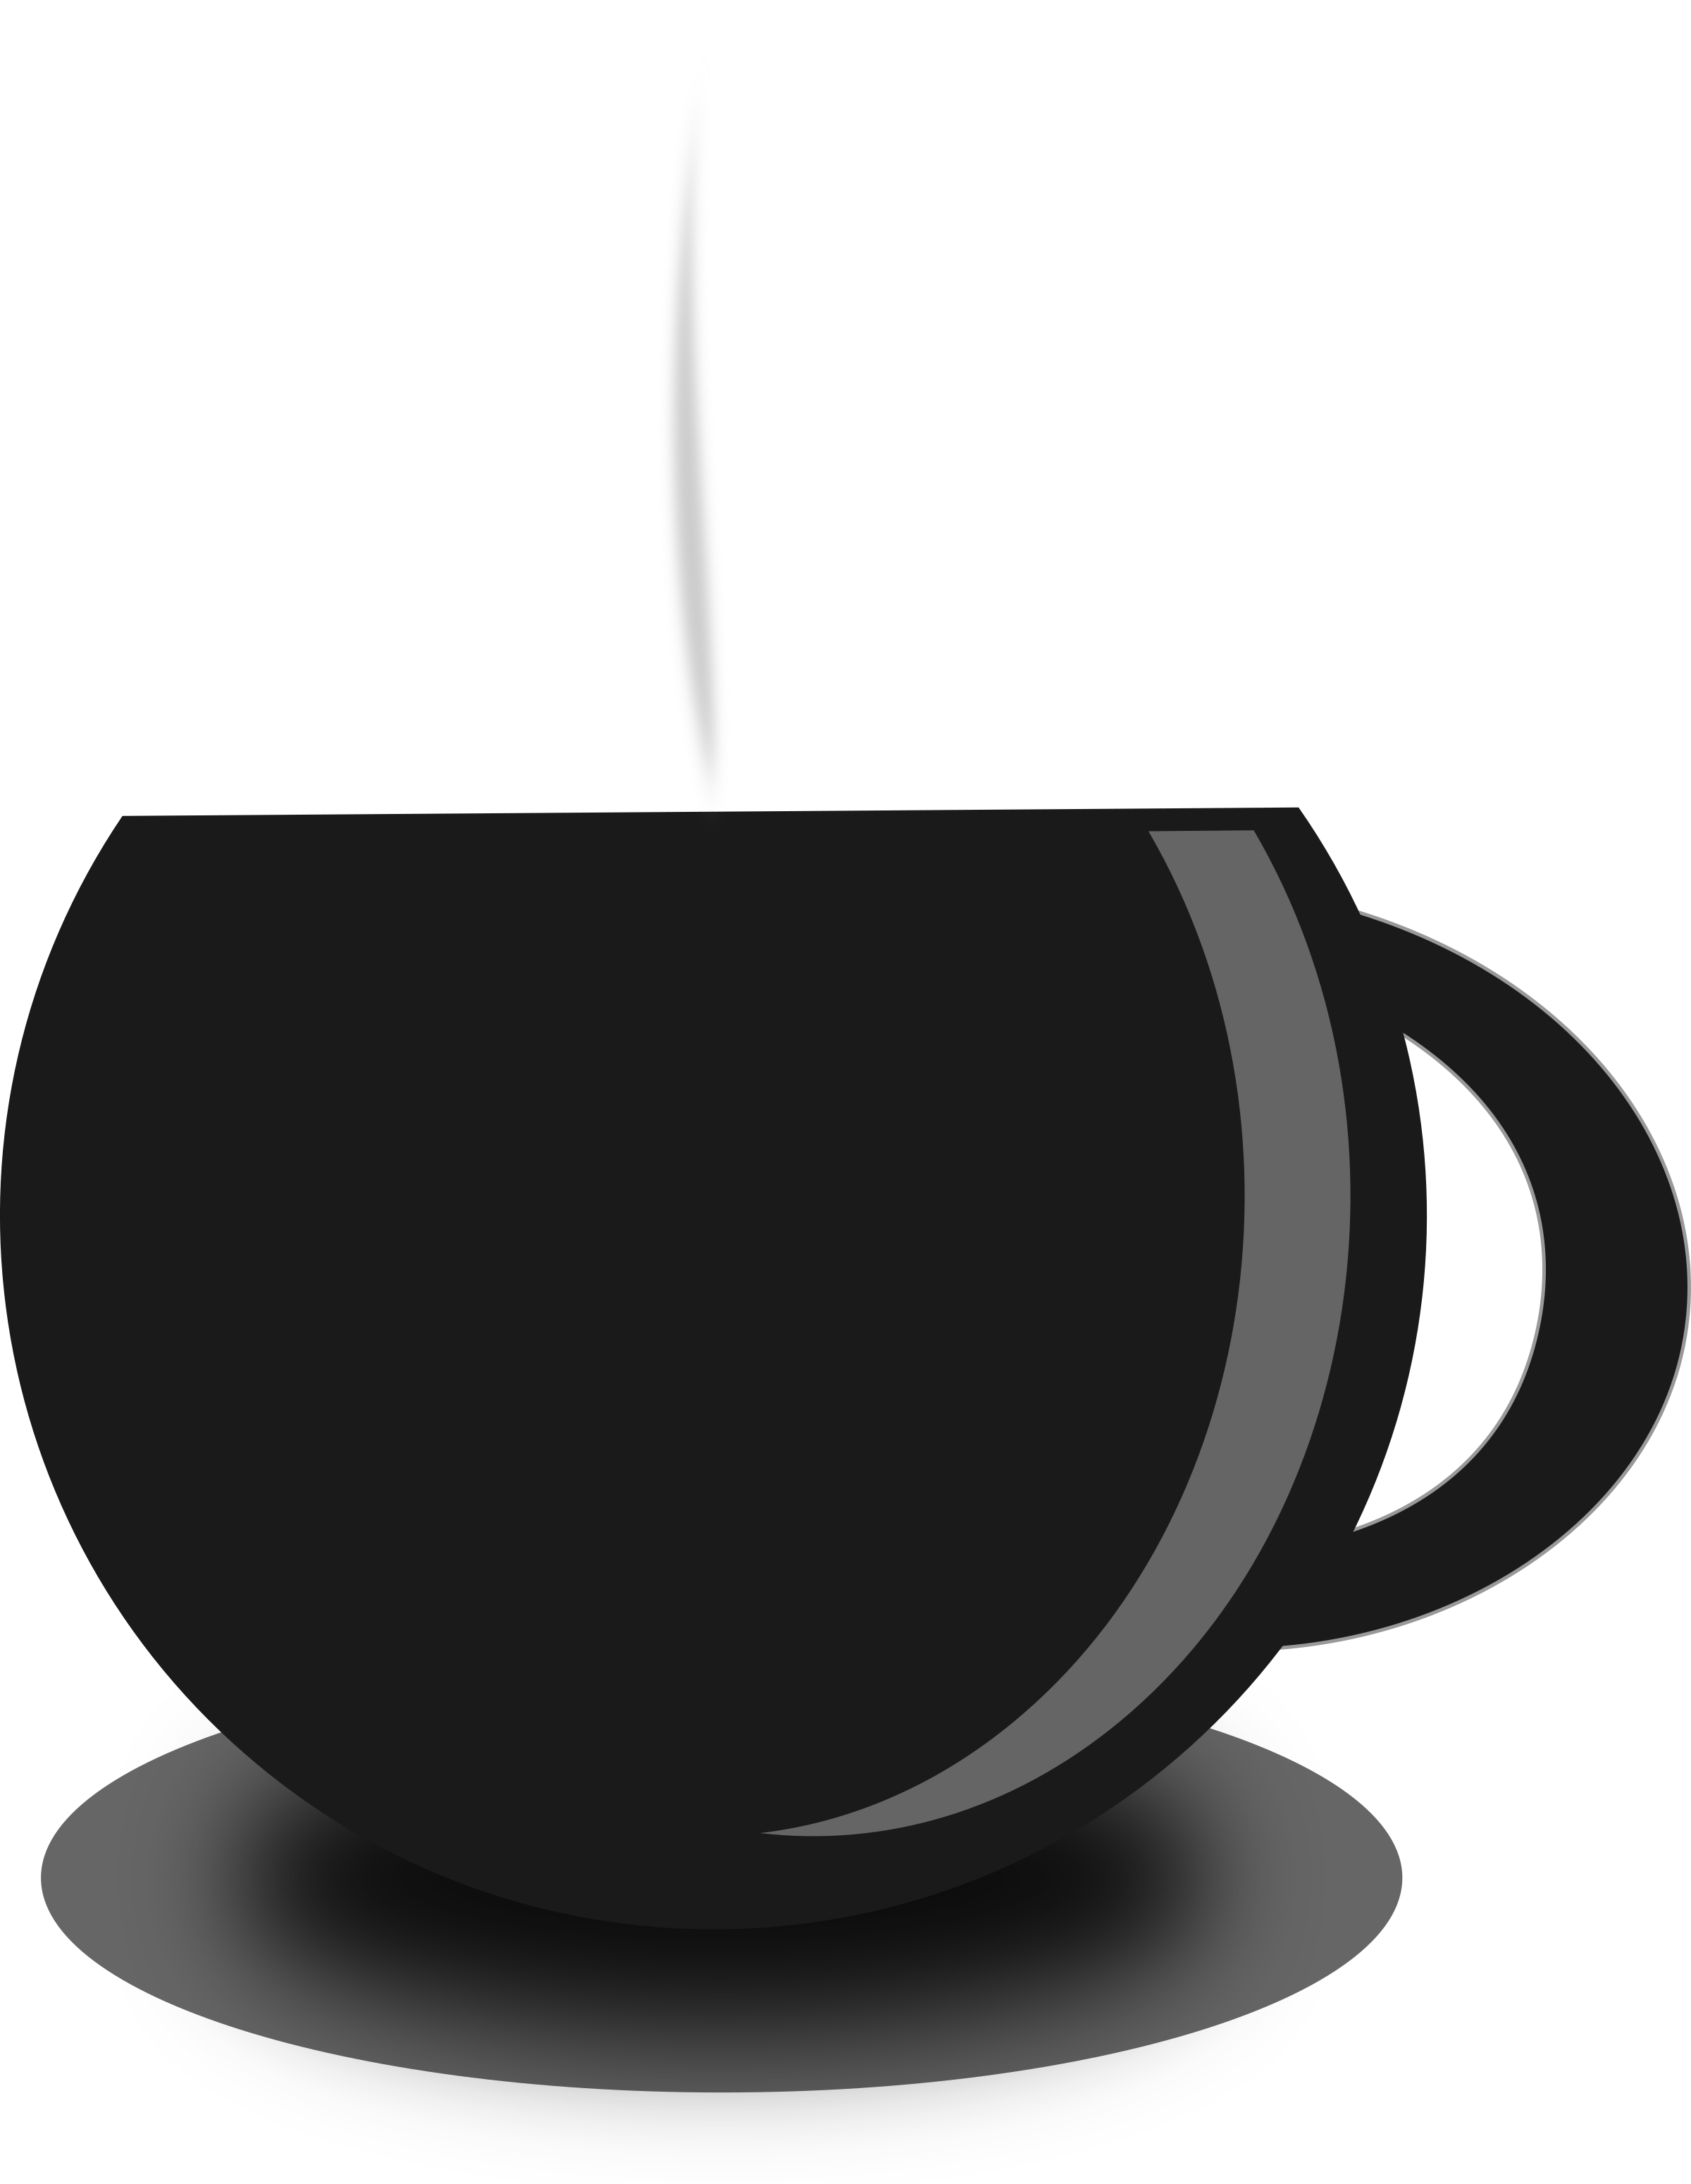 Cup silhouette at getdrawings. Cups clipart anthropomorphic